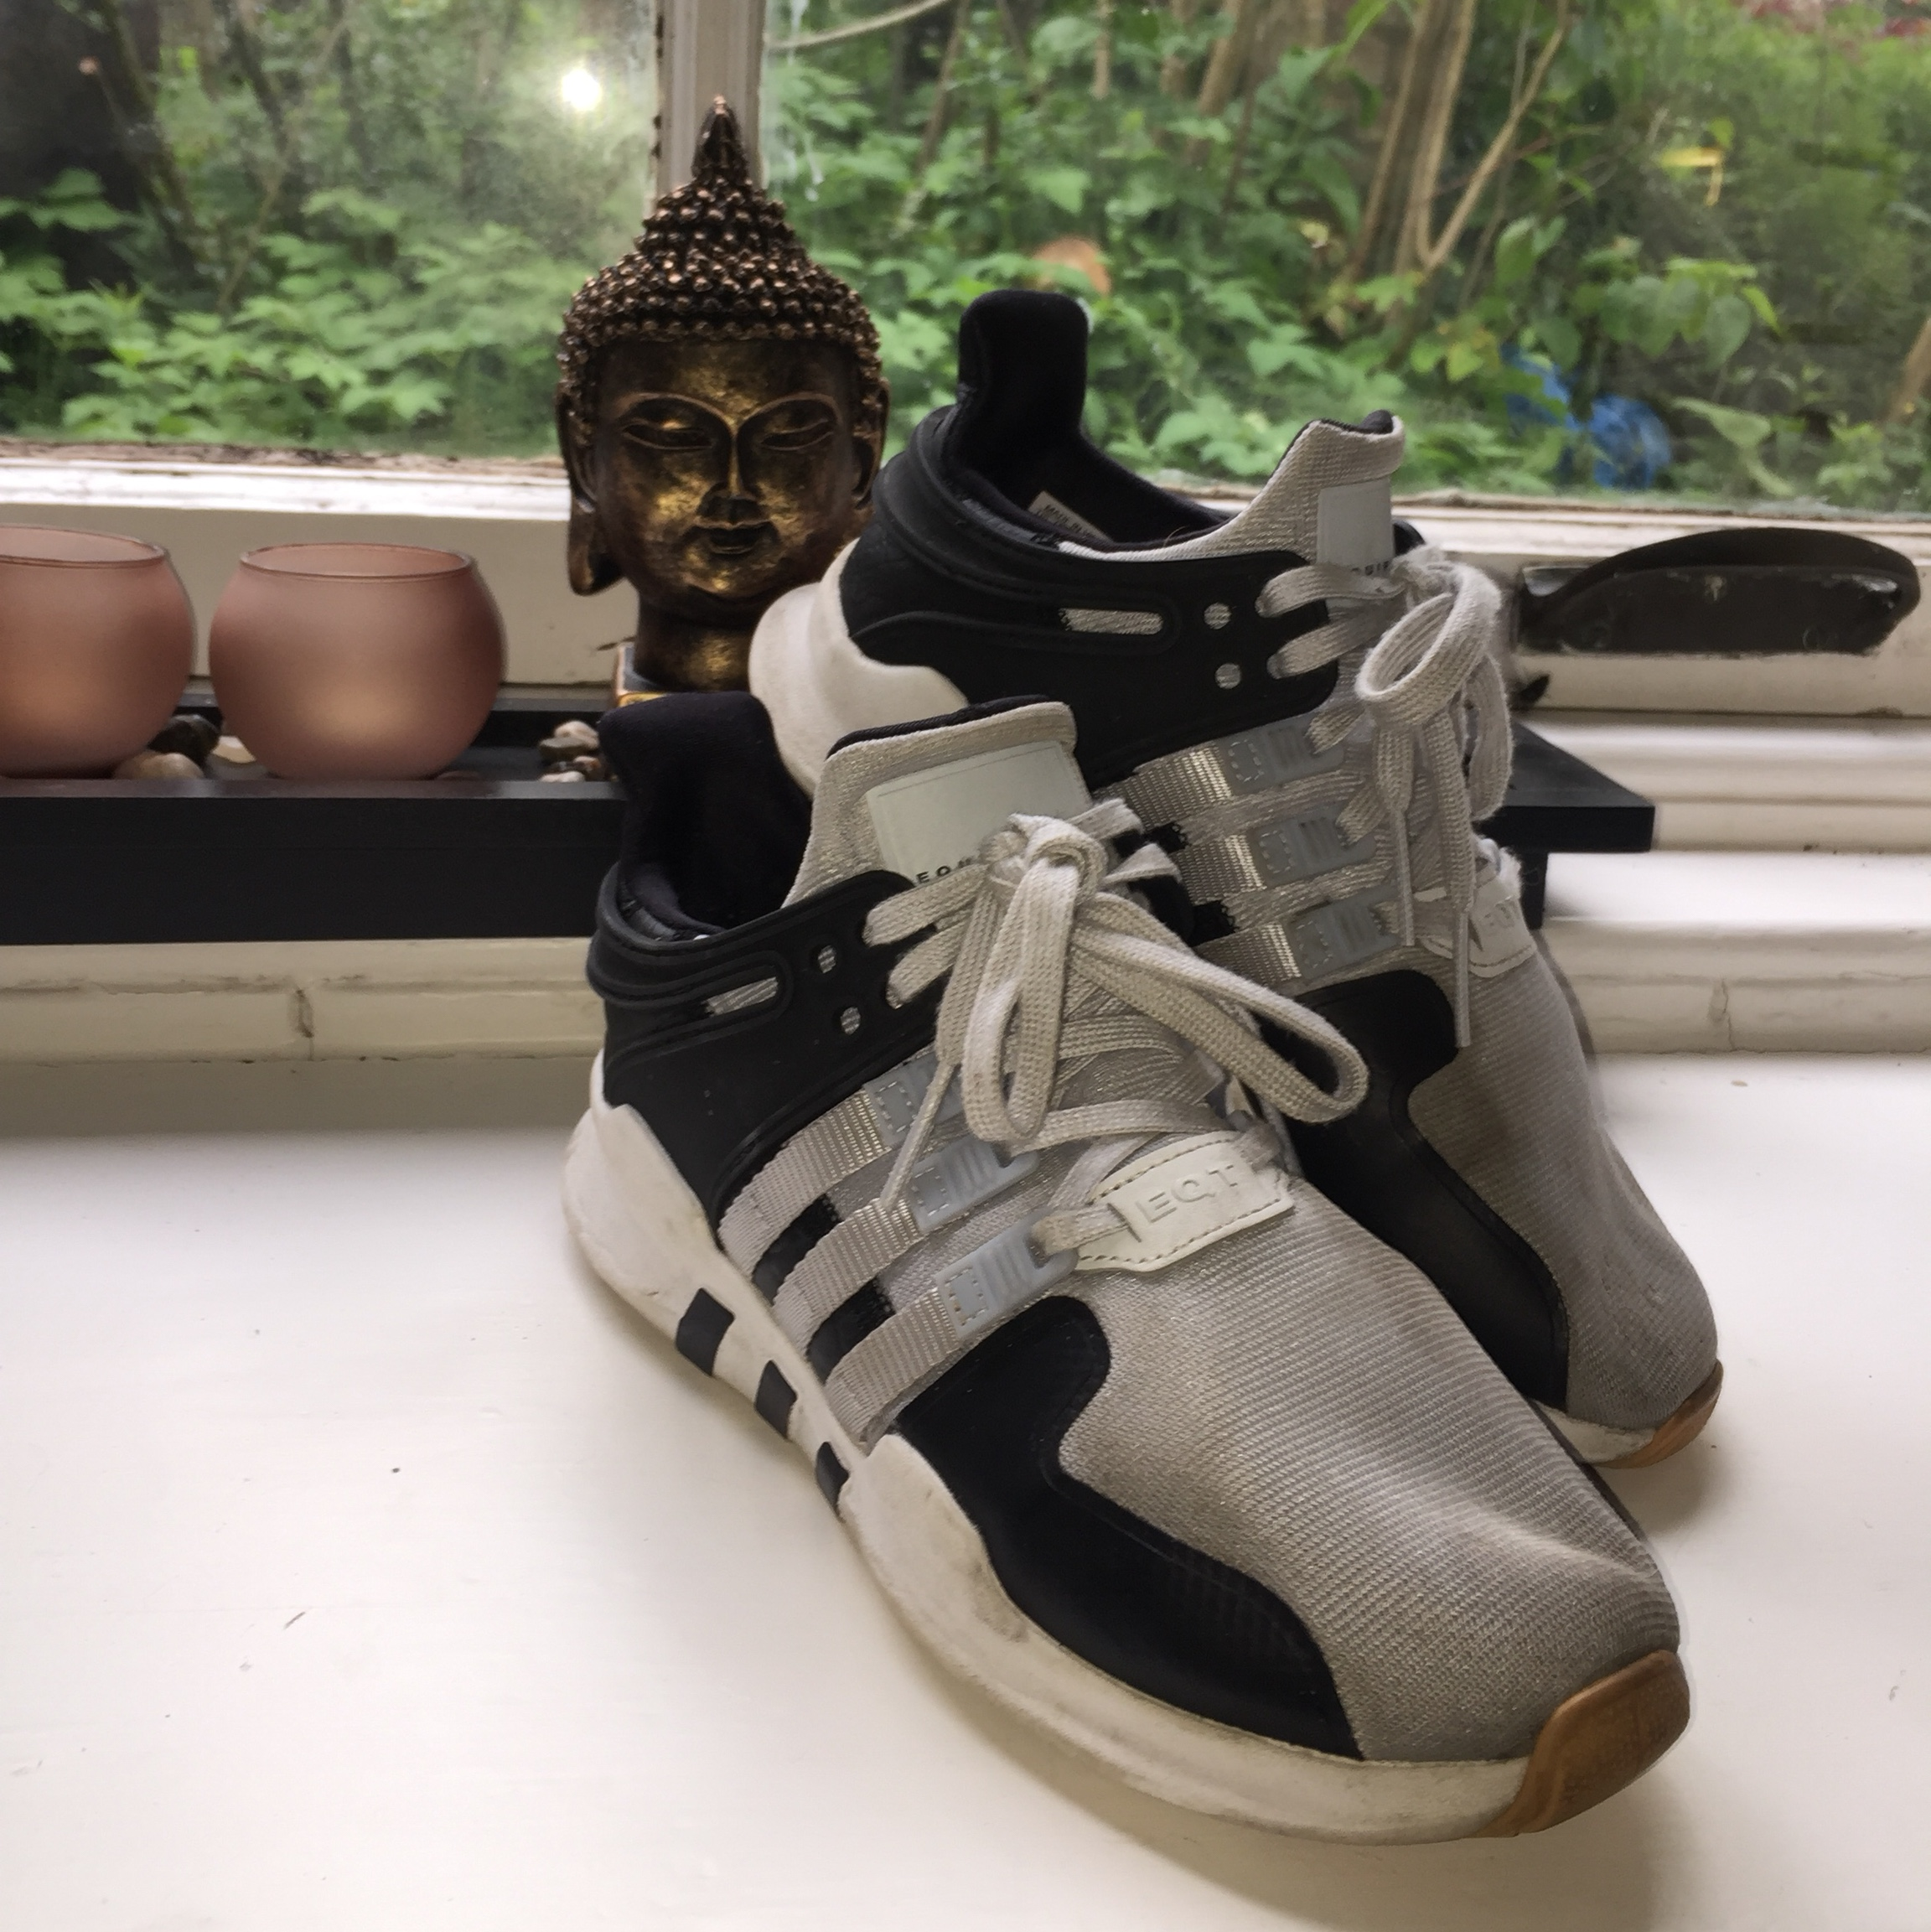 newest 62d95 8dcdd Adidas eqt ortholite Condition worn. Will look... - Depop